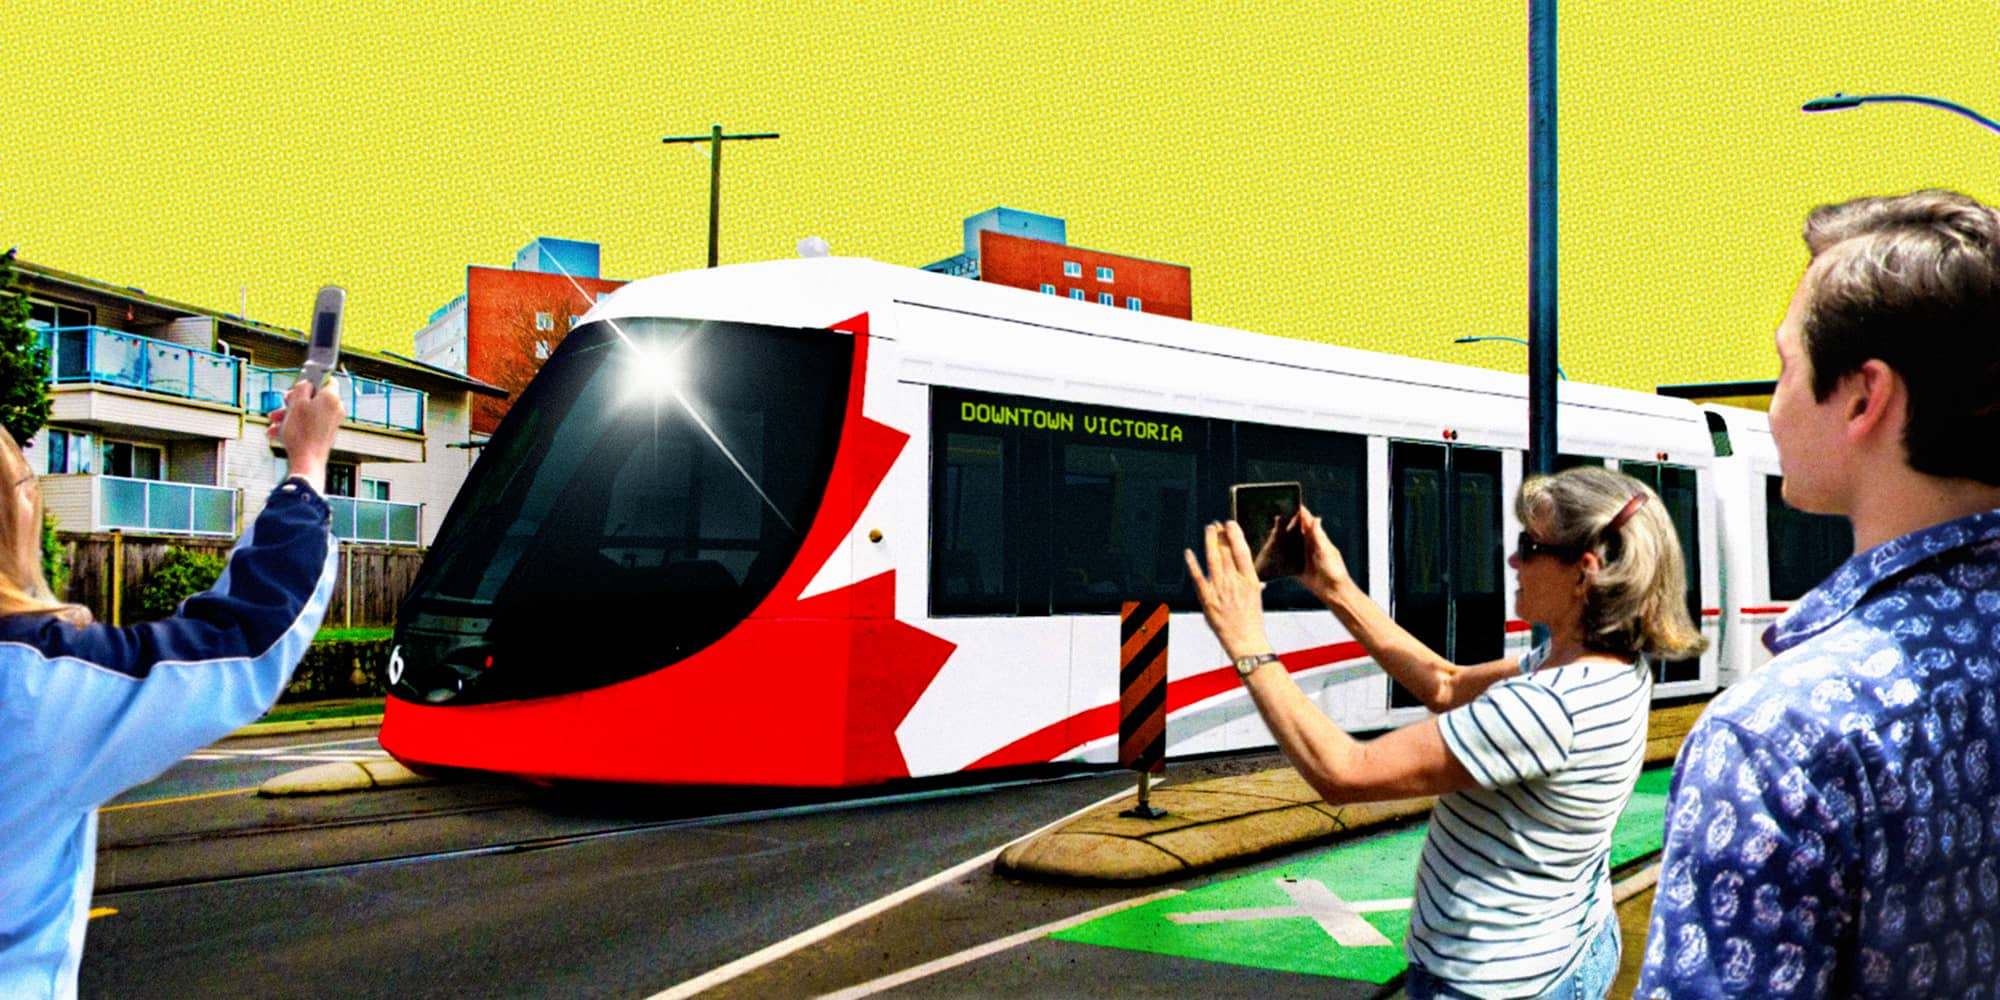 Could passenger rail down the E&N solve Victoria's congestion woes?